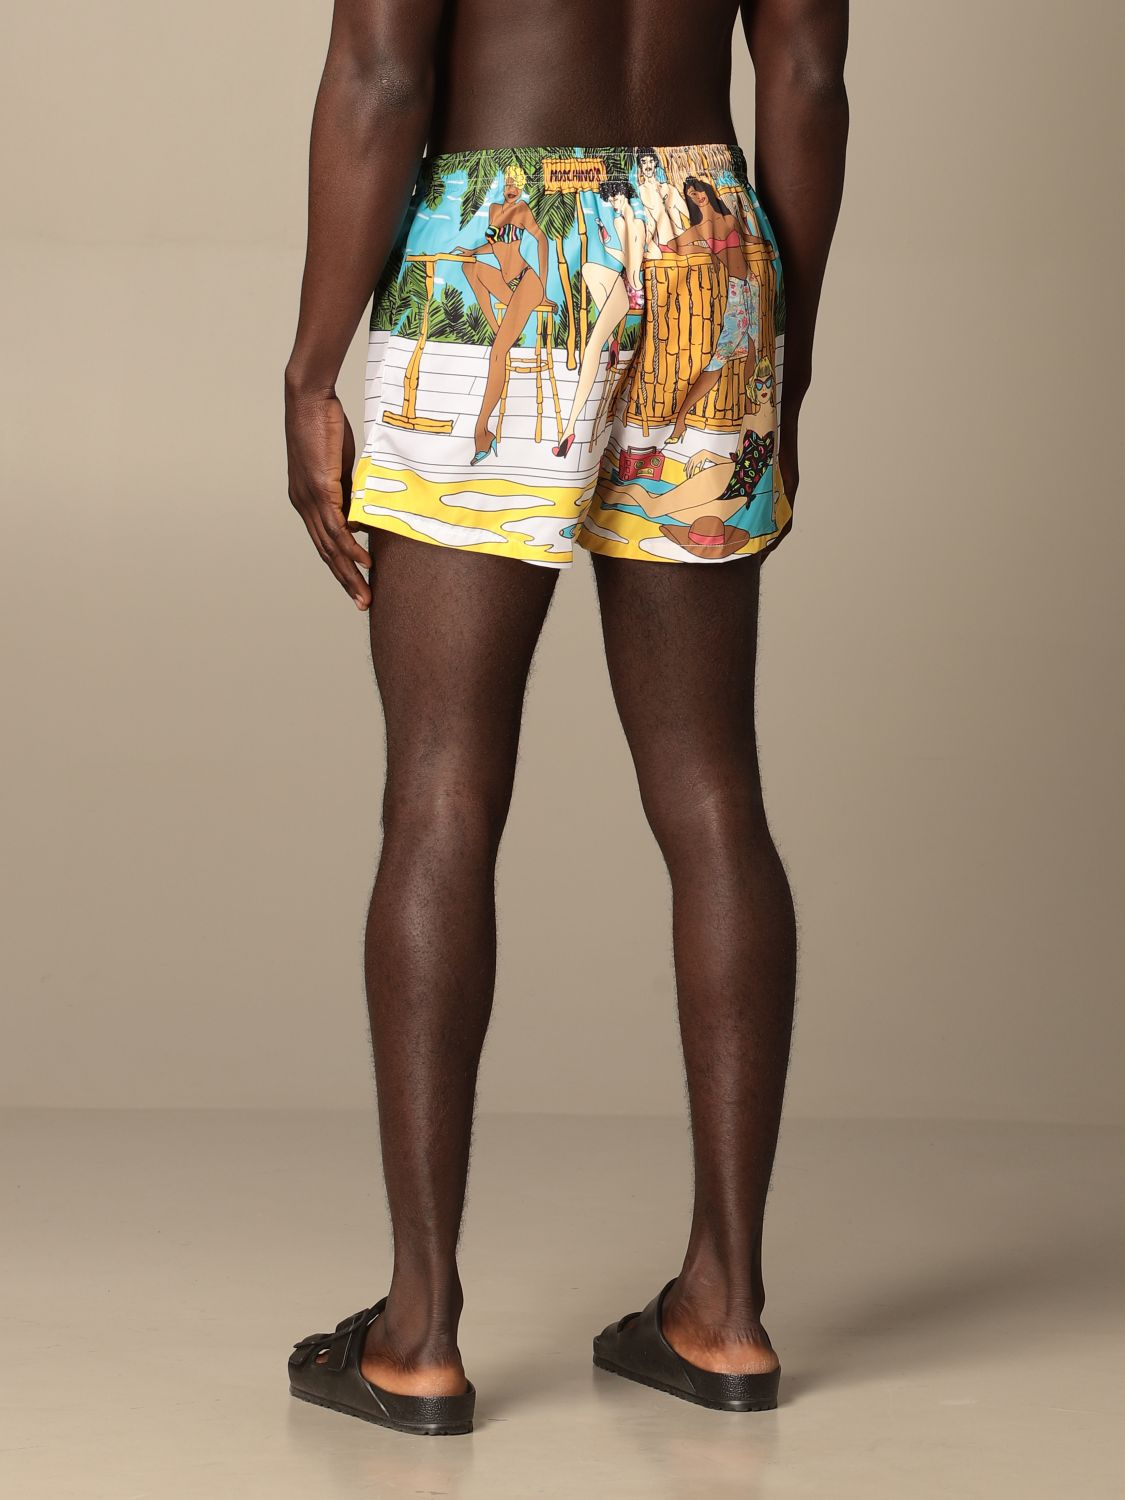 Swimsuit Boutique Moschino: Moschino Boutique printed boxer costume gnawed blue 2